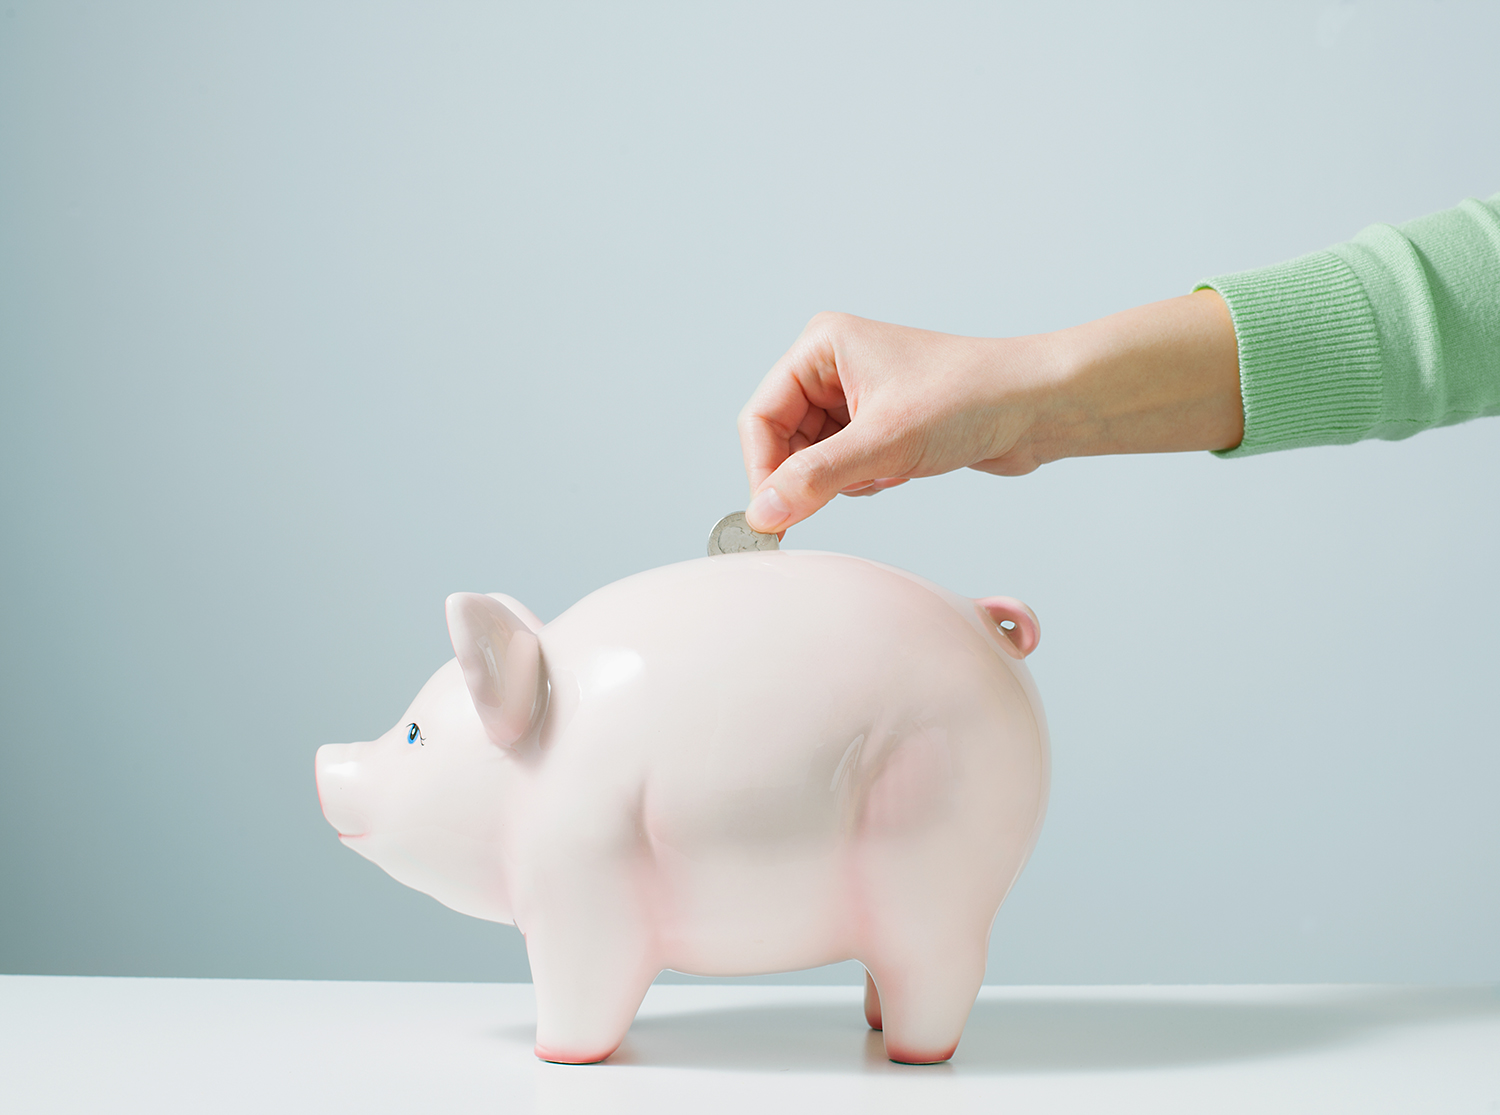 Hand Placing Coins in Piggy Bank